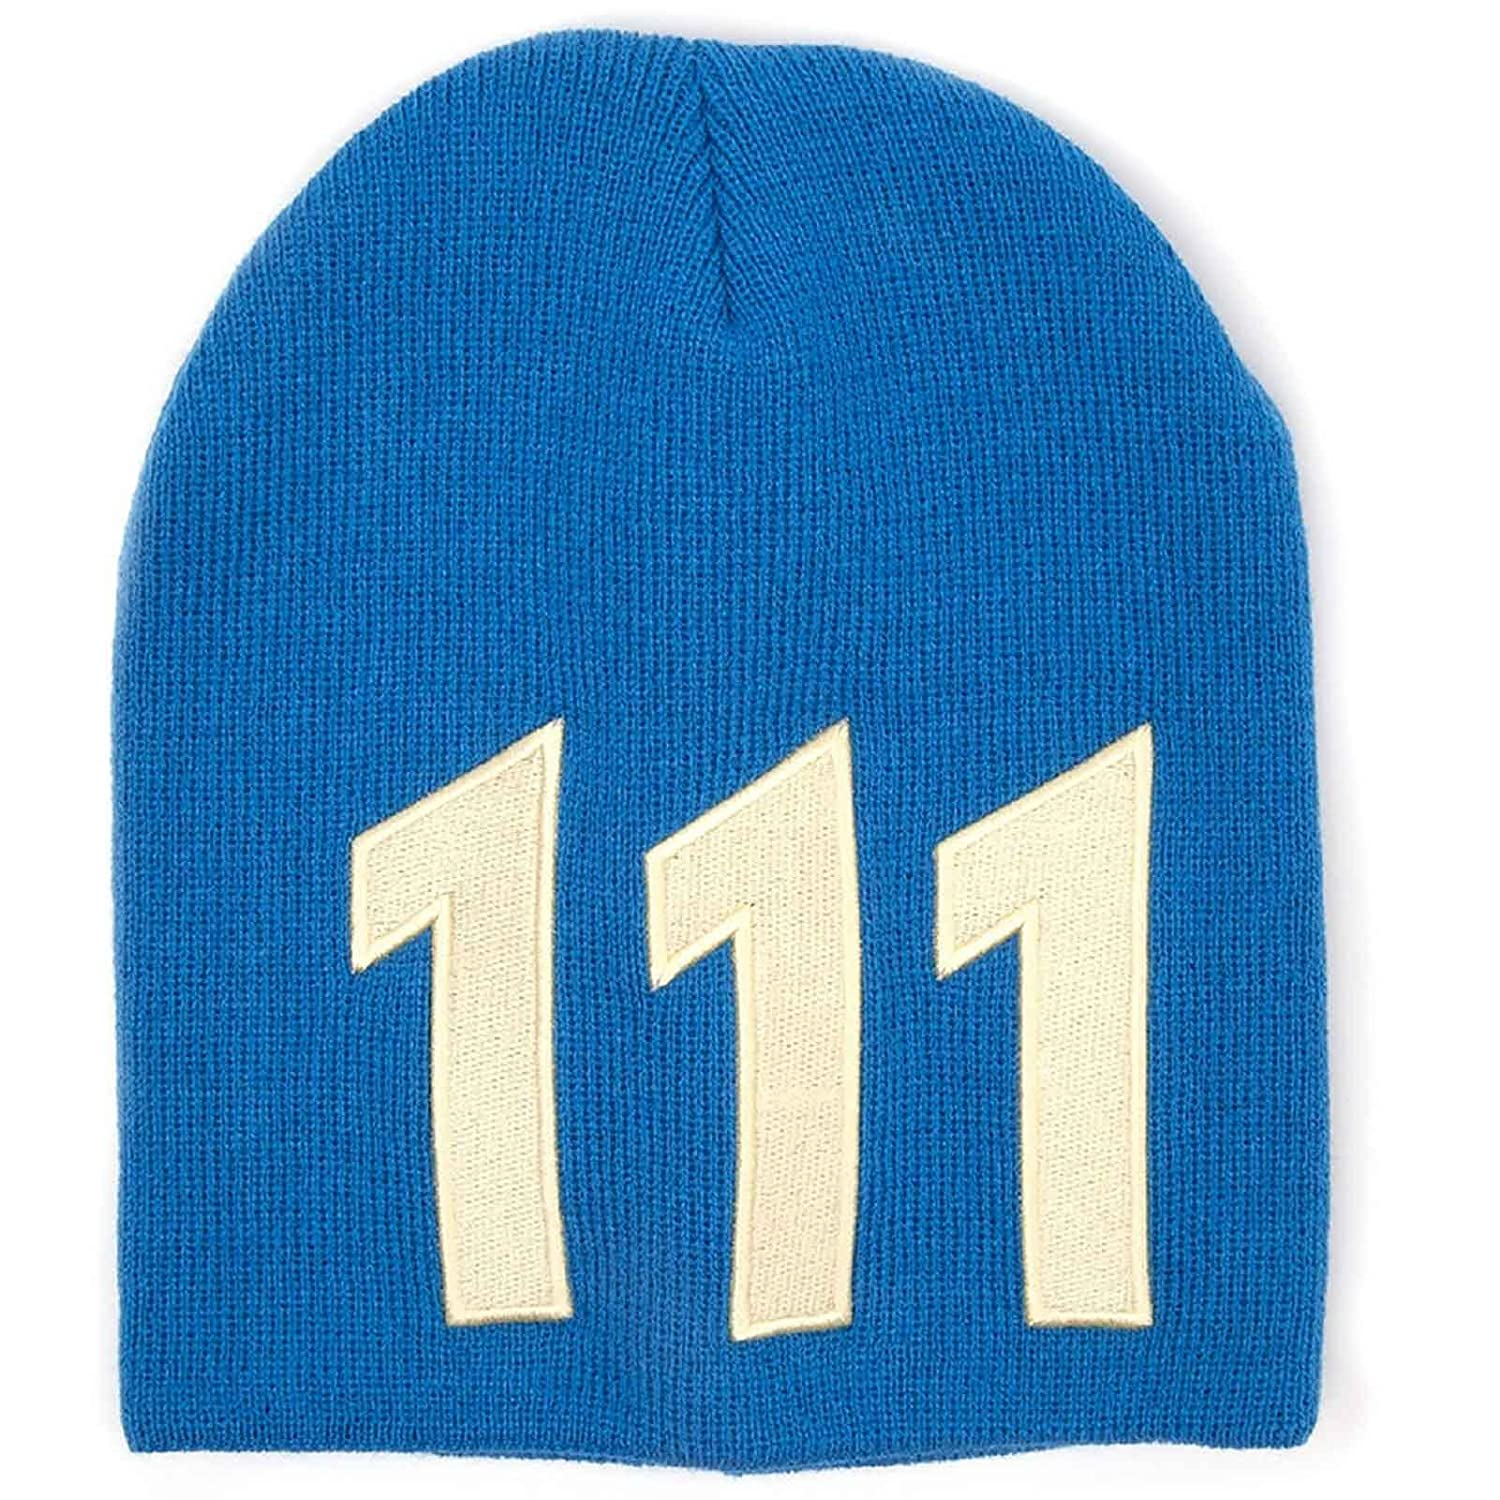 Fallout 4 Beanie Hat Cap Vault 111 new Official PS4 Xbox Blue